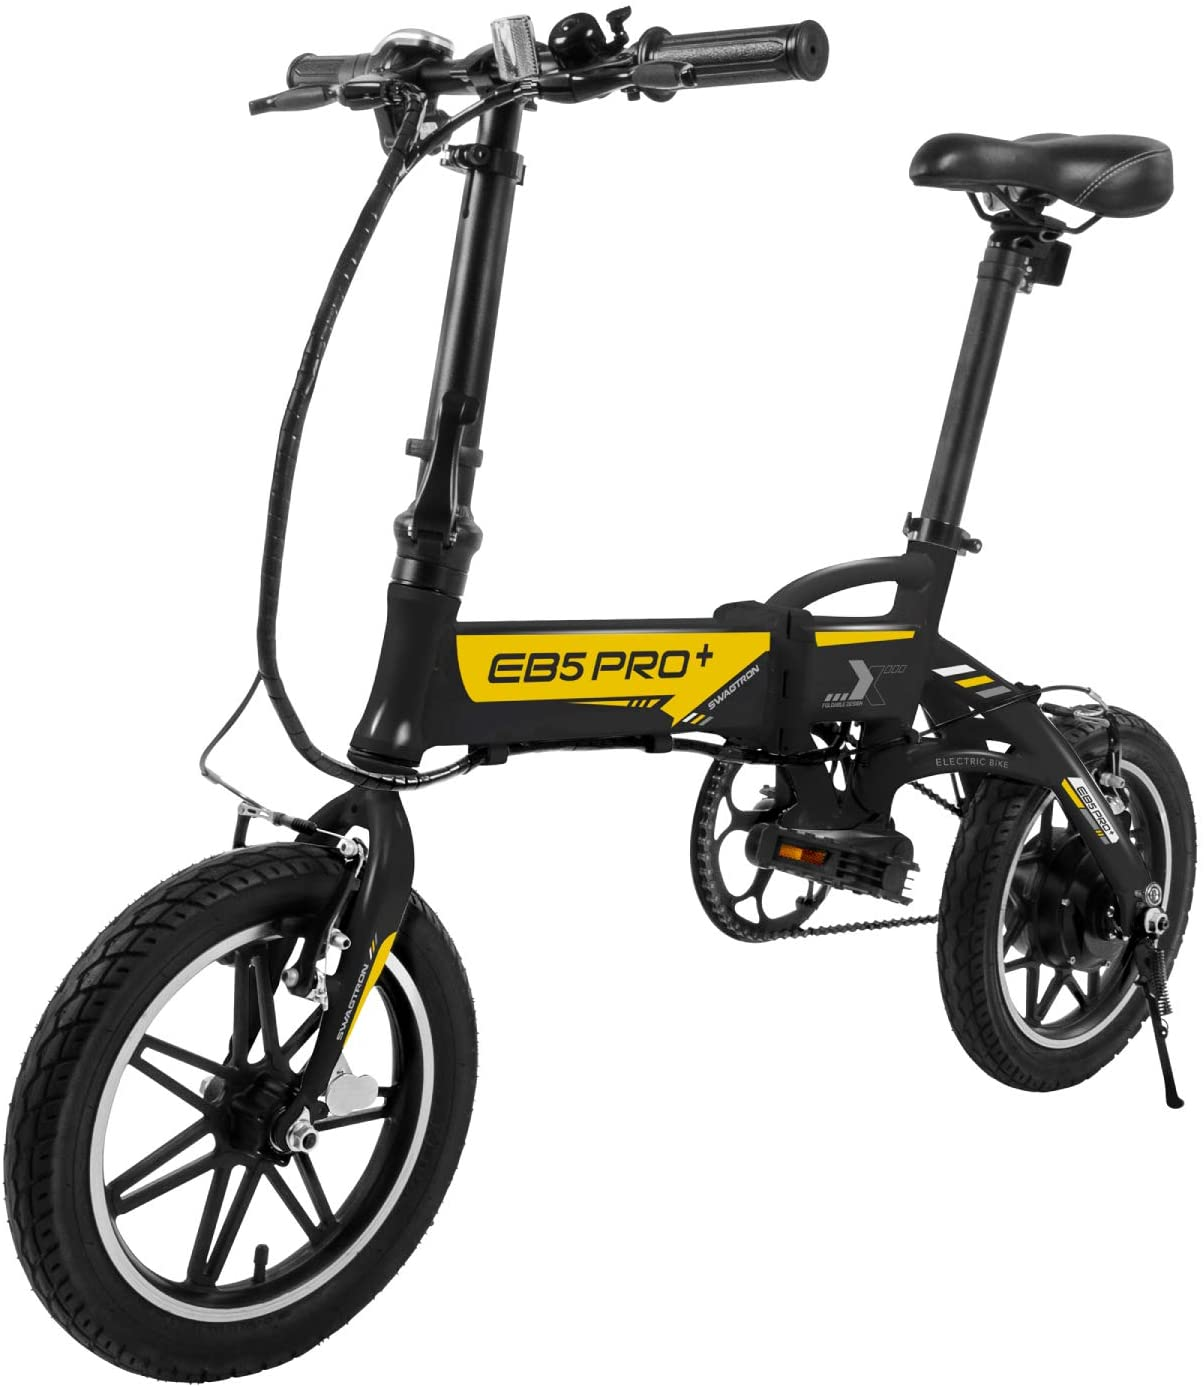 Amazon.com: SWAGTRON Swagcycle EB5 Series Ebike plegable de ...